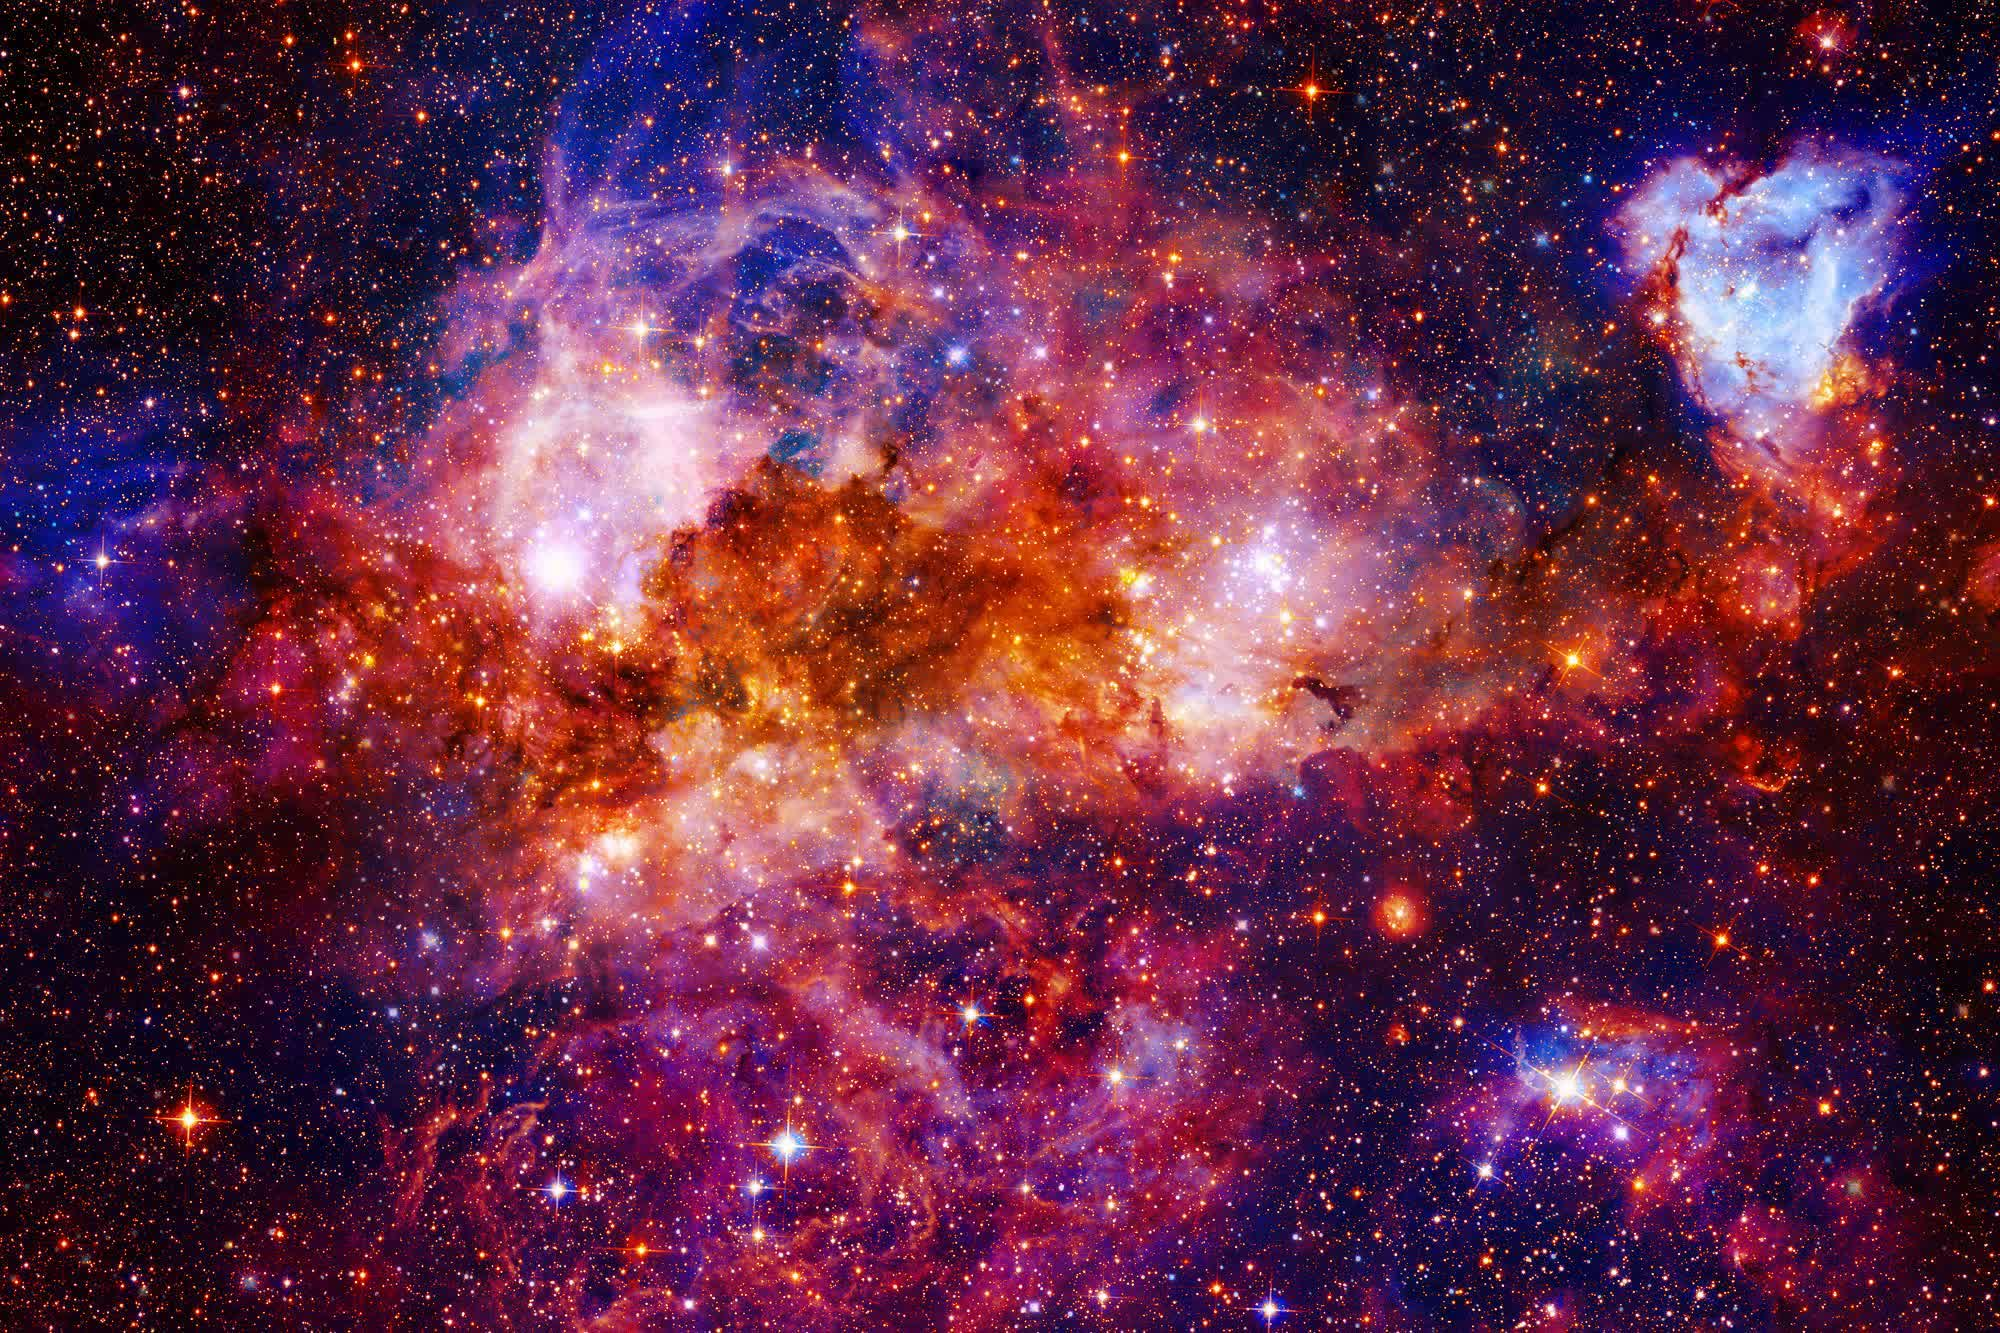 Astronomers look at over 10 million stars in search for alien life, find nothing